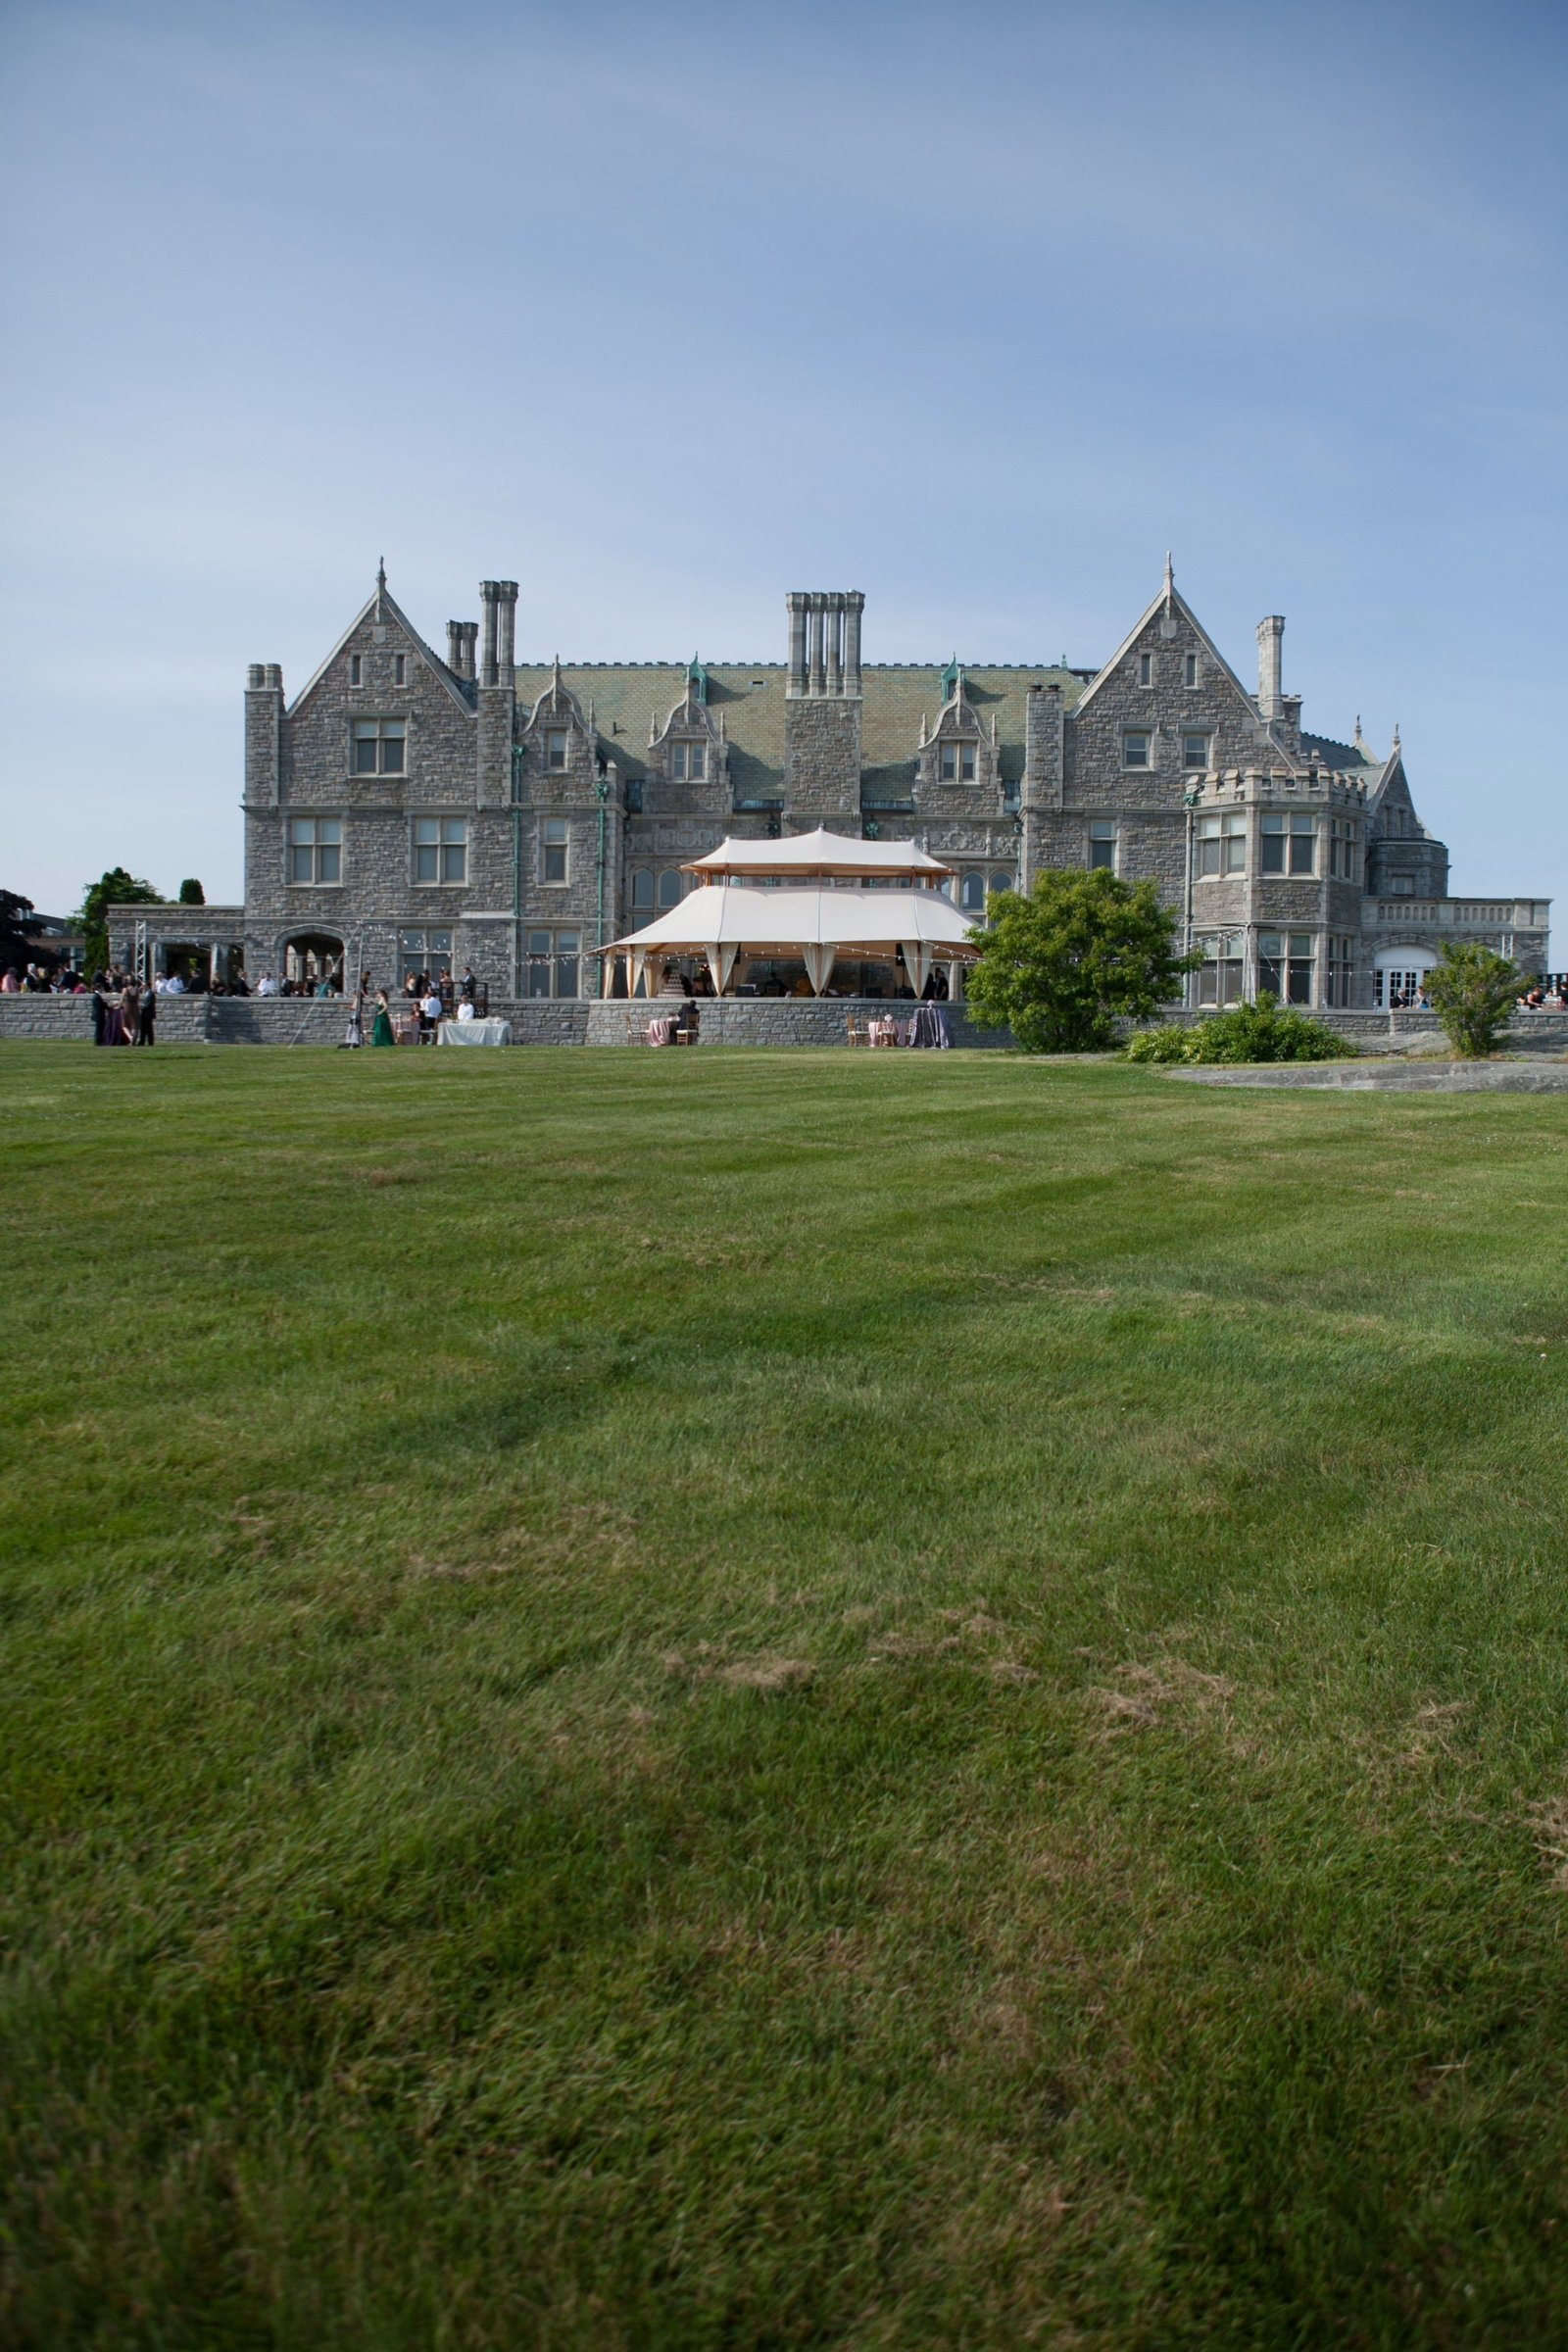 jubilee_events_branford_house_mansion_groton_ct__0126